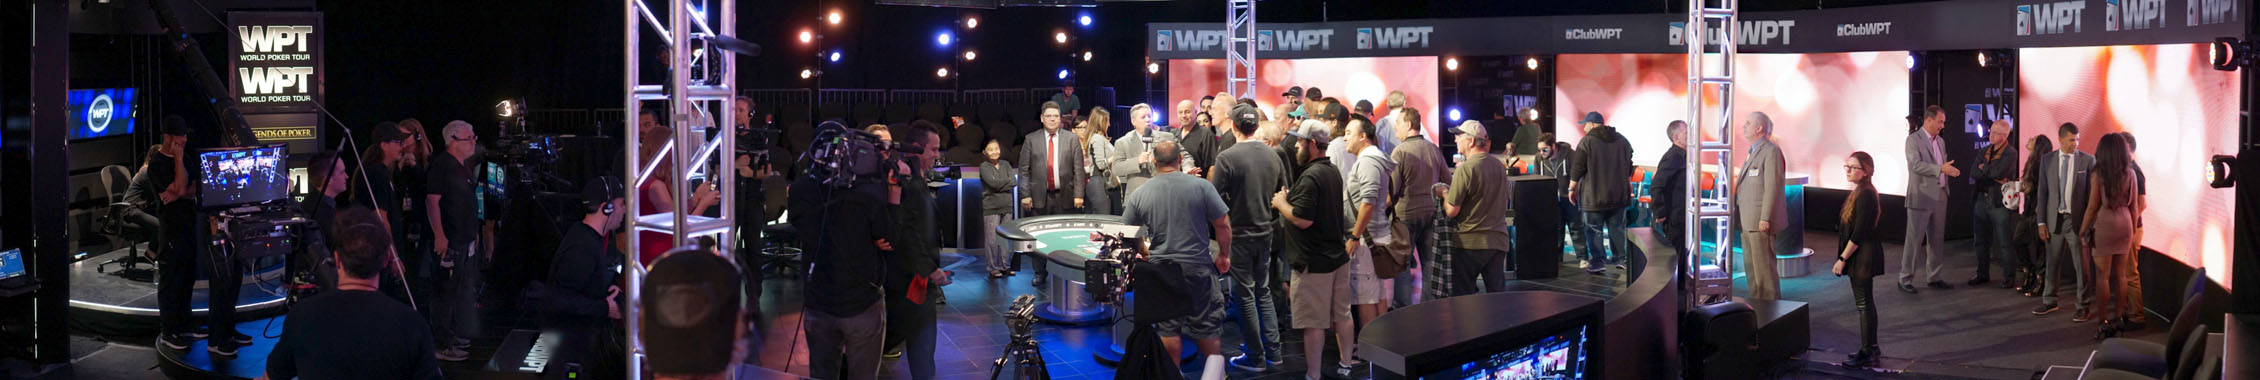 Pat Lyons Wins WPT's Legends of Poker